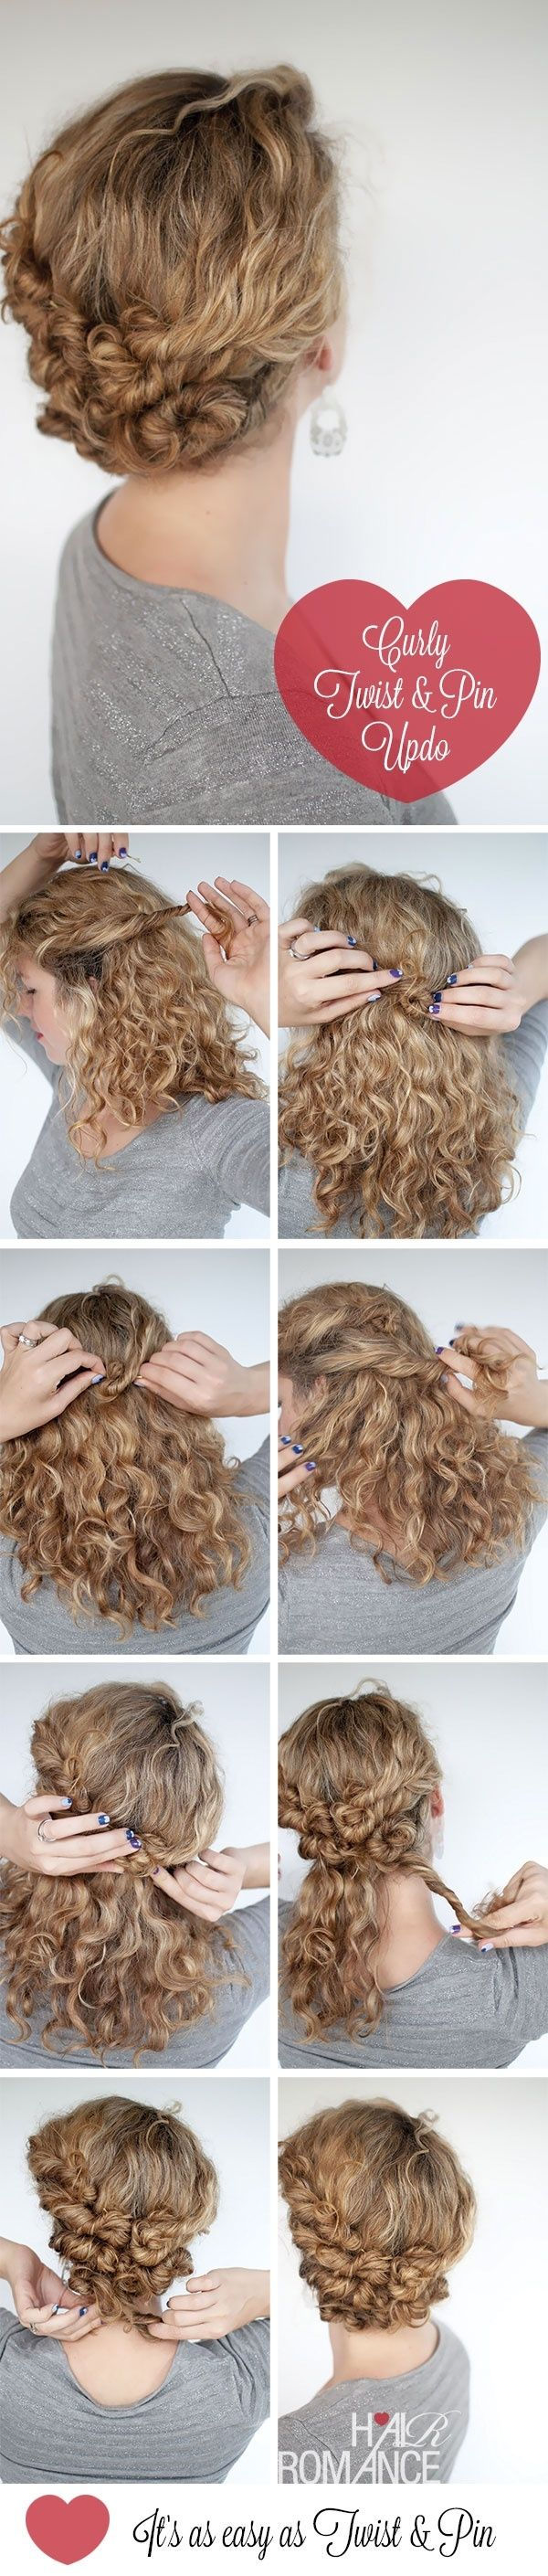 DIY - Curly Twist & Pin Hairstyle Tutorial by chrystal